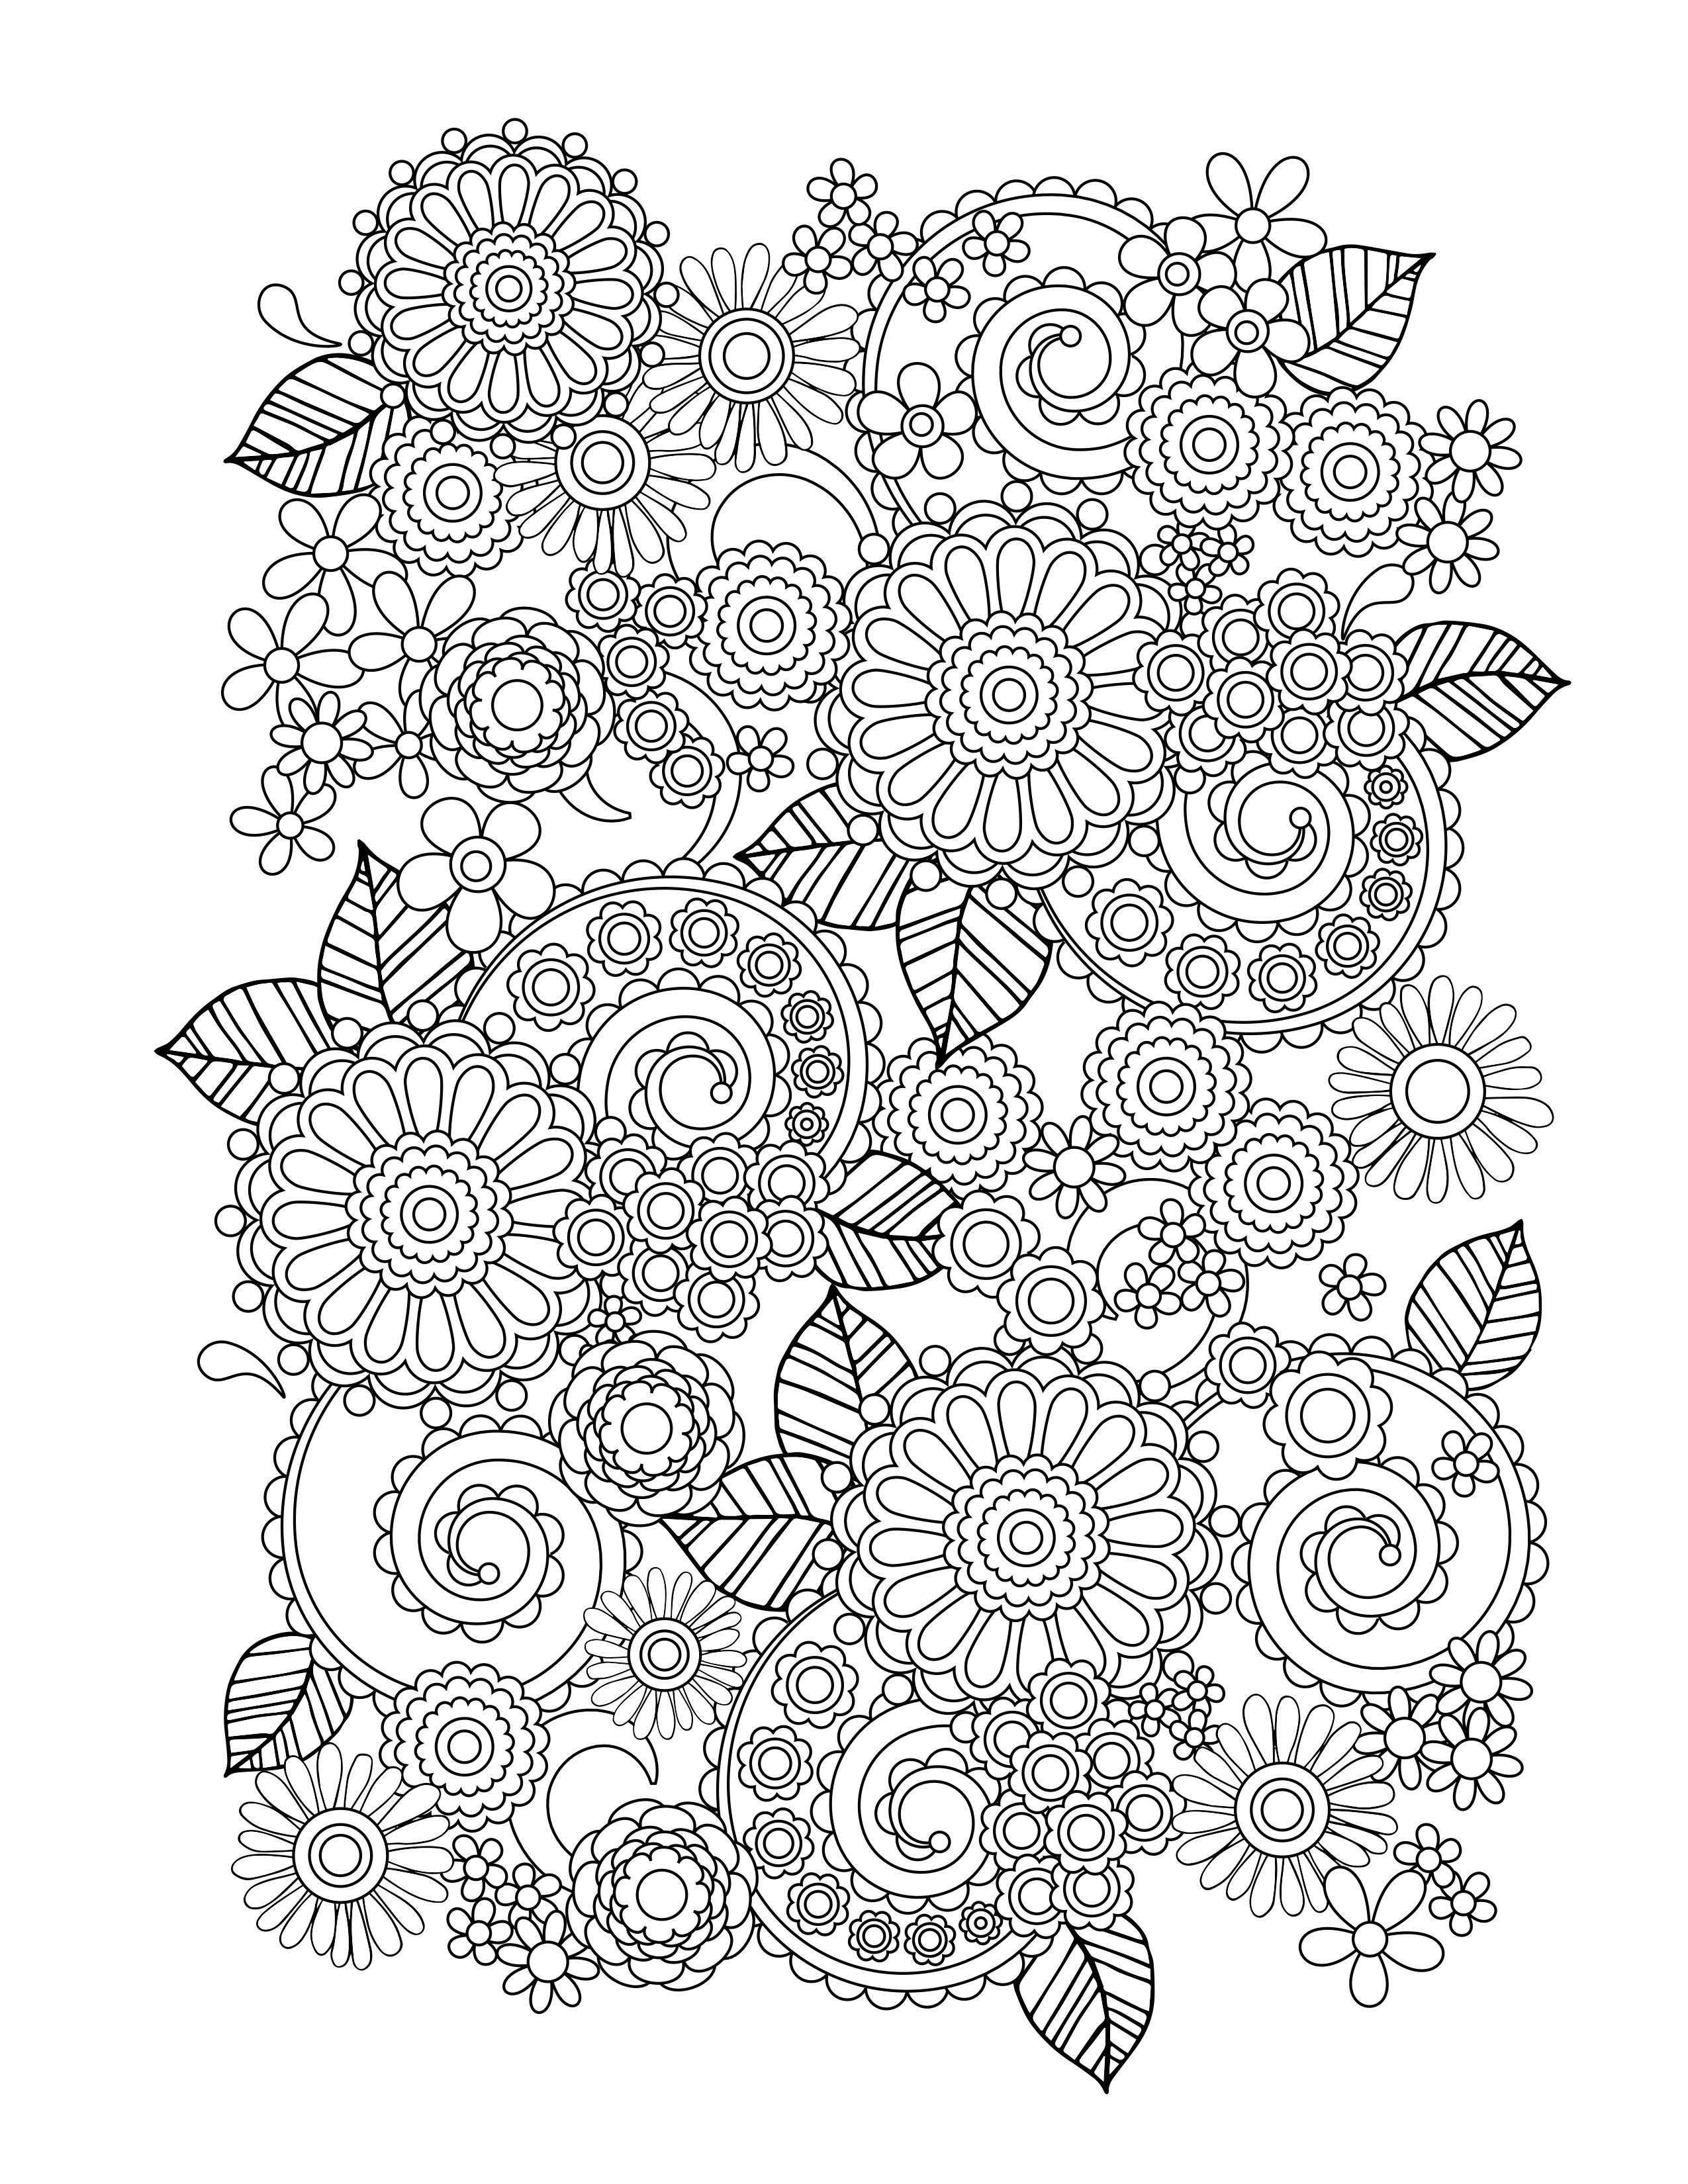 coloring page of a flower flower coloring pages for adults best coloring pages for of page a flower coloring